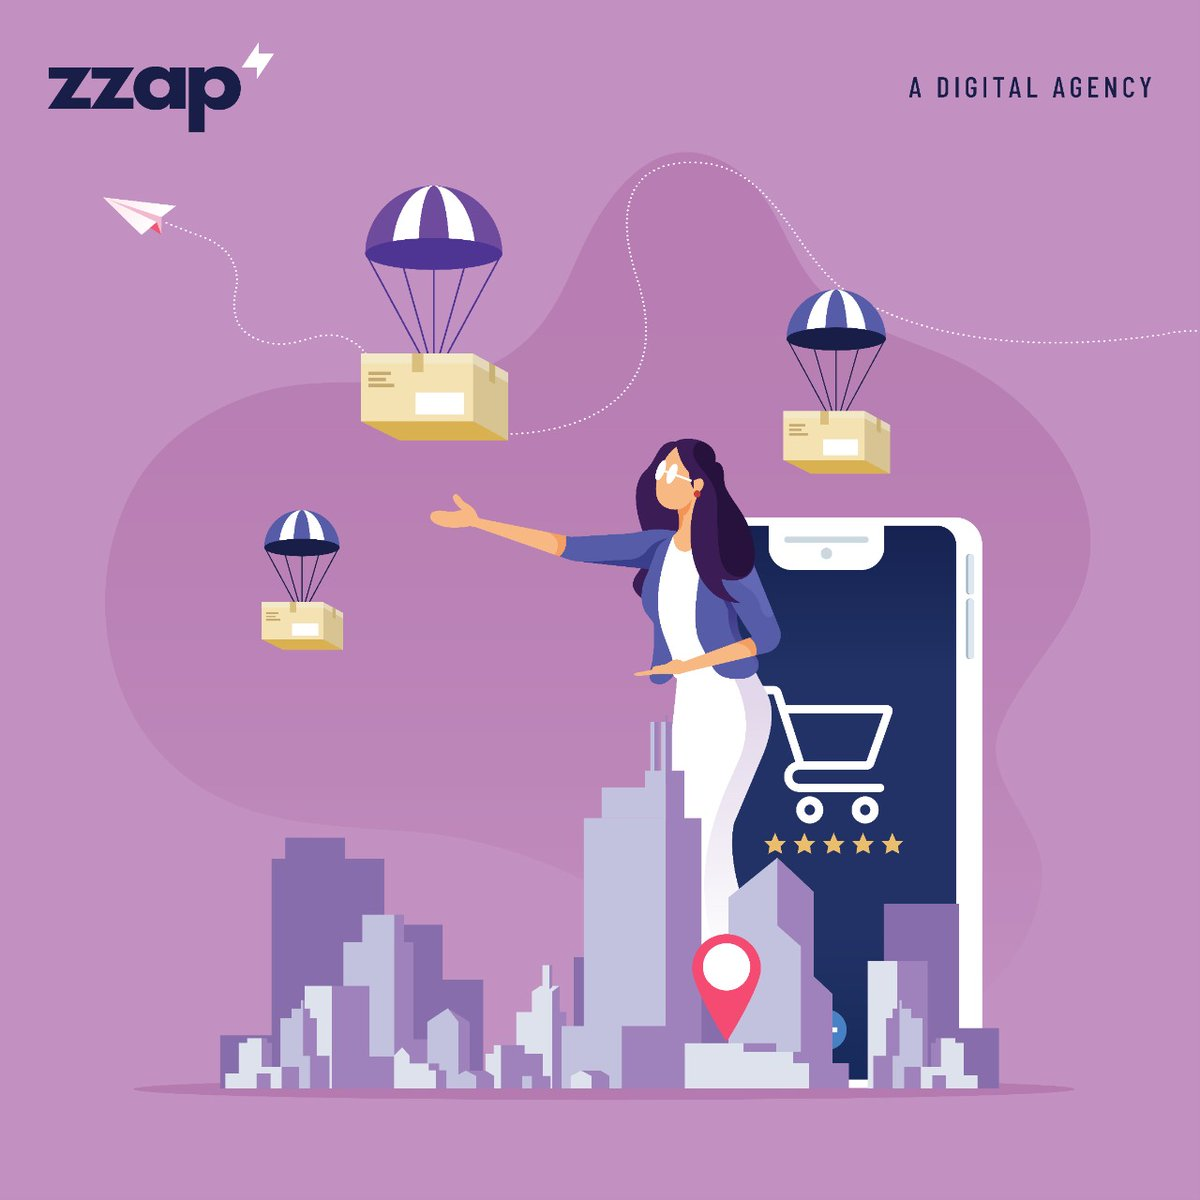 #boostyourbusiness with #zzapdigital  #we #help #you reach #your #target #customer with #state of the #art #creatives and an #impeccable #digital #strategyandtransformation   #contact #us to #know #more https://t.co/2F2PtwBwuh